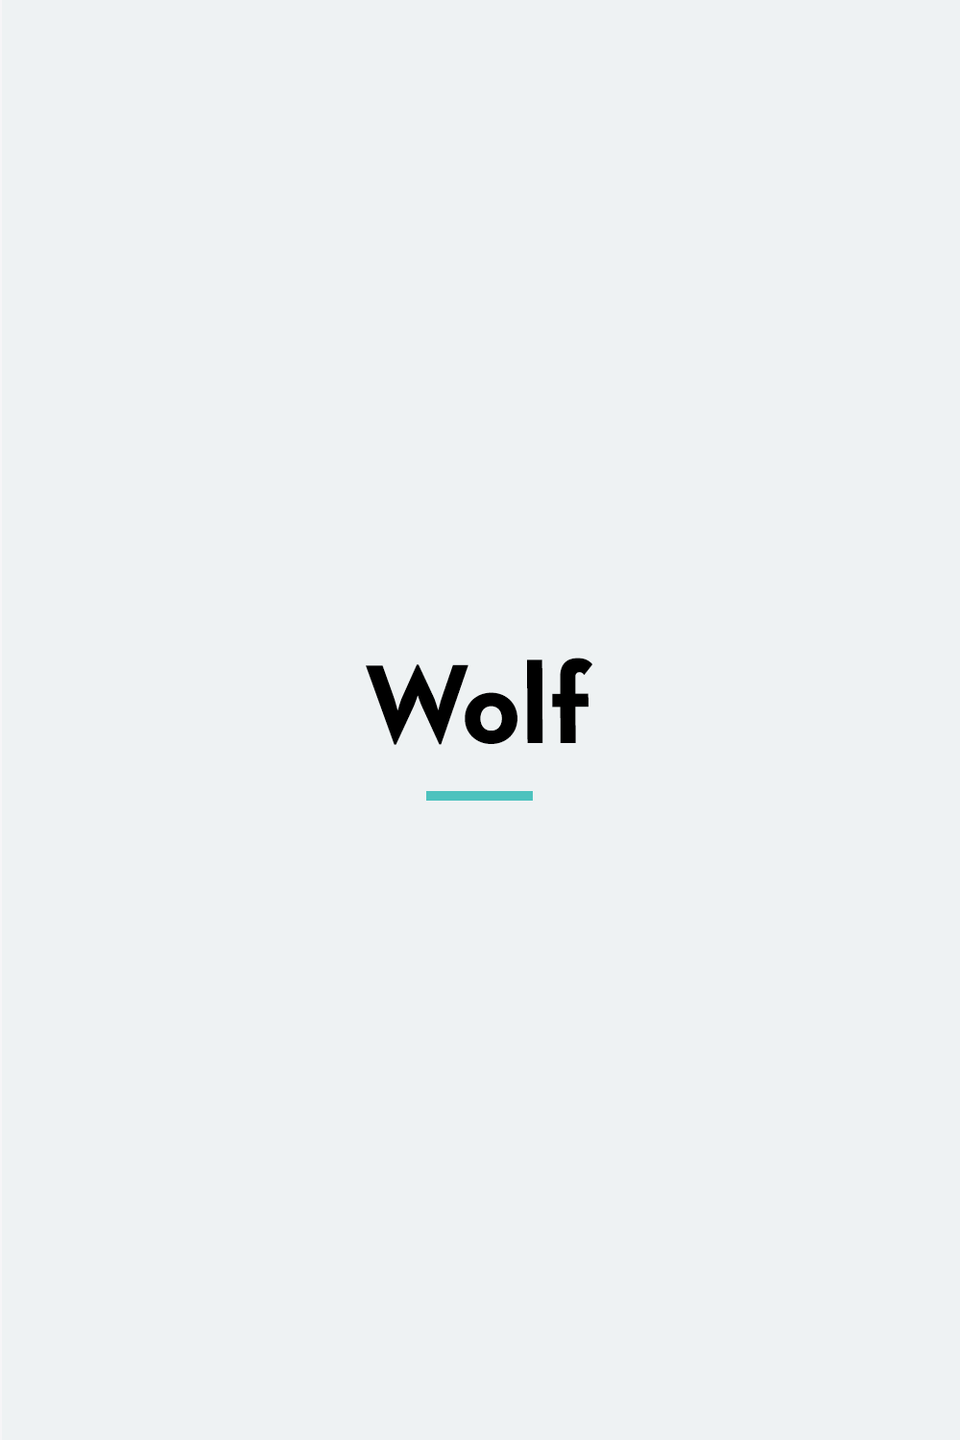 "<p>Parents in Spain were so riled up when the name they picked for their son, Lobo, meaning ""Wolf,"" was considered offensive that <a href=""https://www.foxnews.com/lifestyle/spanish-officials-relent-allow-parents-to-name-their-son-wolf"" rel=""nofollow noopener"" target=""_blank"" data-ylk=""slk:they started an online petition"" class=""link rapid-noclick-resp"">they started an online petition</a> in their defense. After receiving more than 25,000 signatures, the Spanish officials relented.</p>"